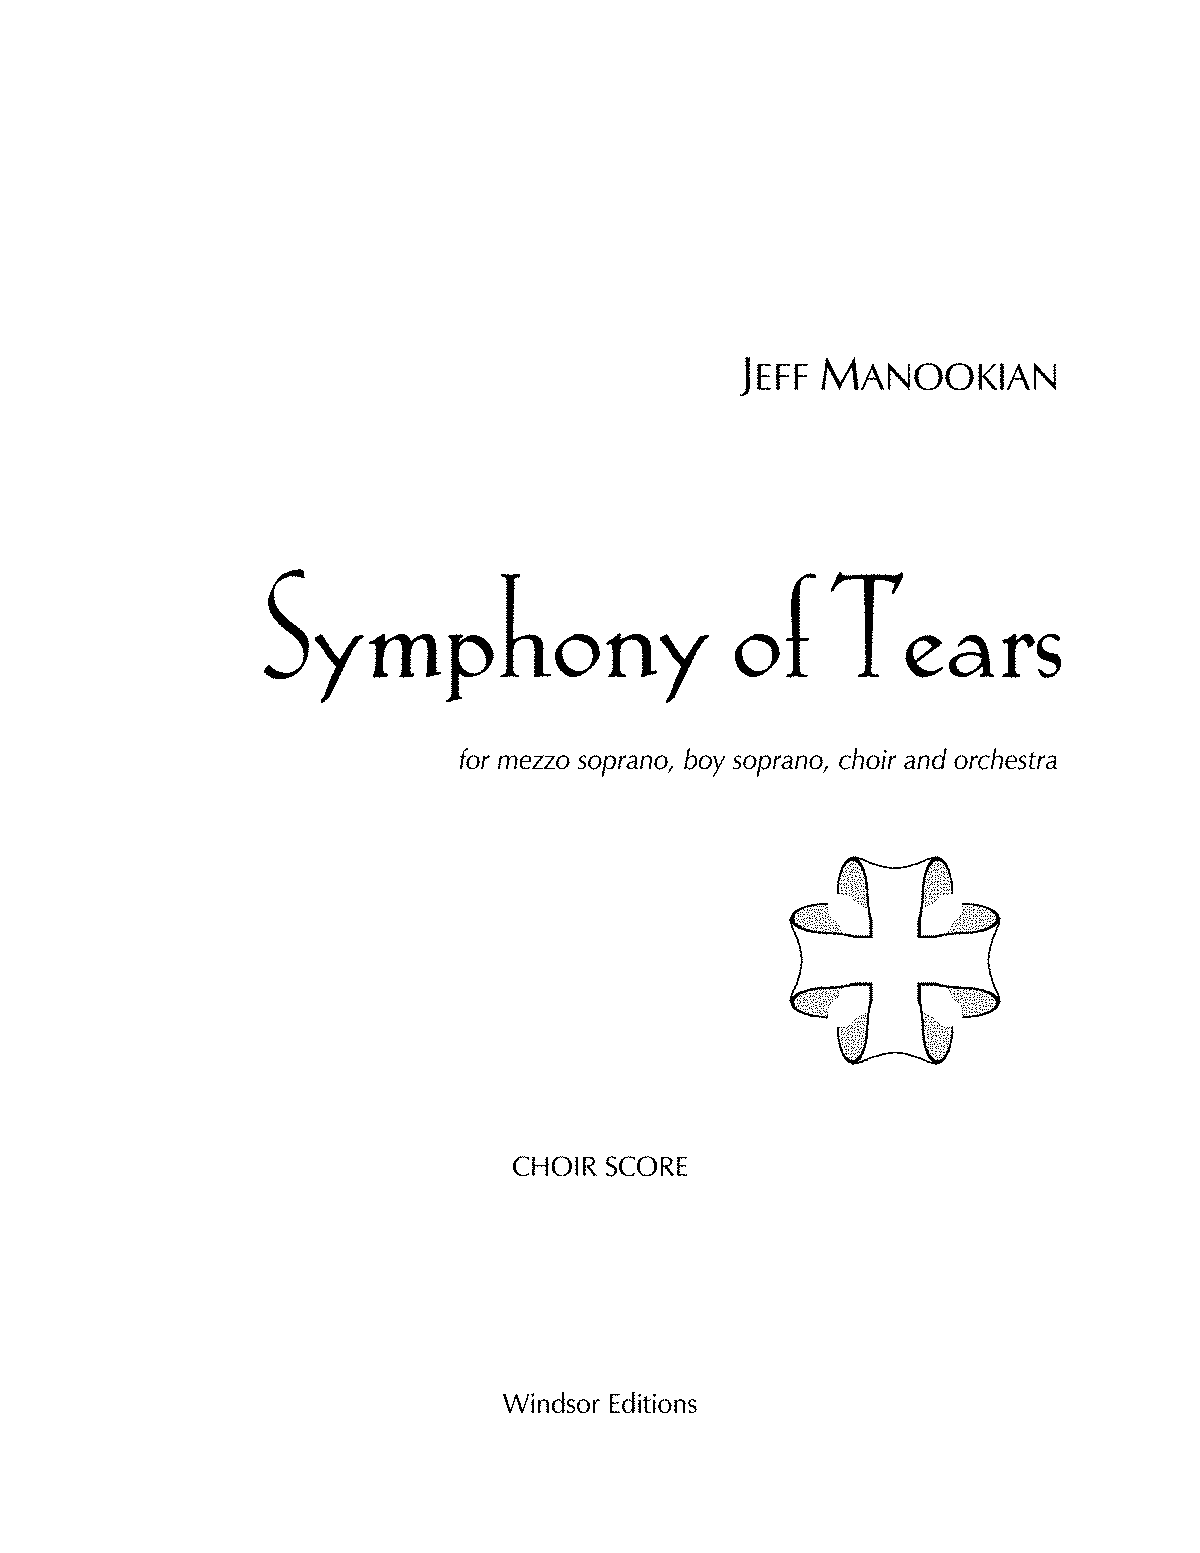 PMLP118441-JEFF MANOOKIAN - Symphony of Tears - Part 1 - vocal & piano score.pdf